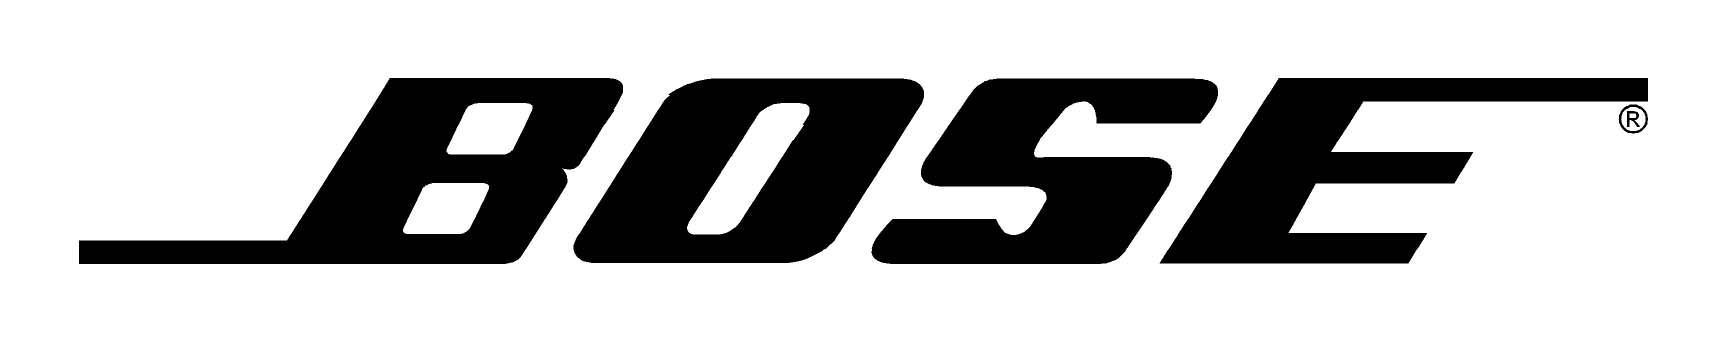 Bose Logo - bose logo - Realm Projects